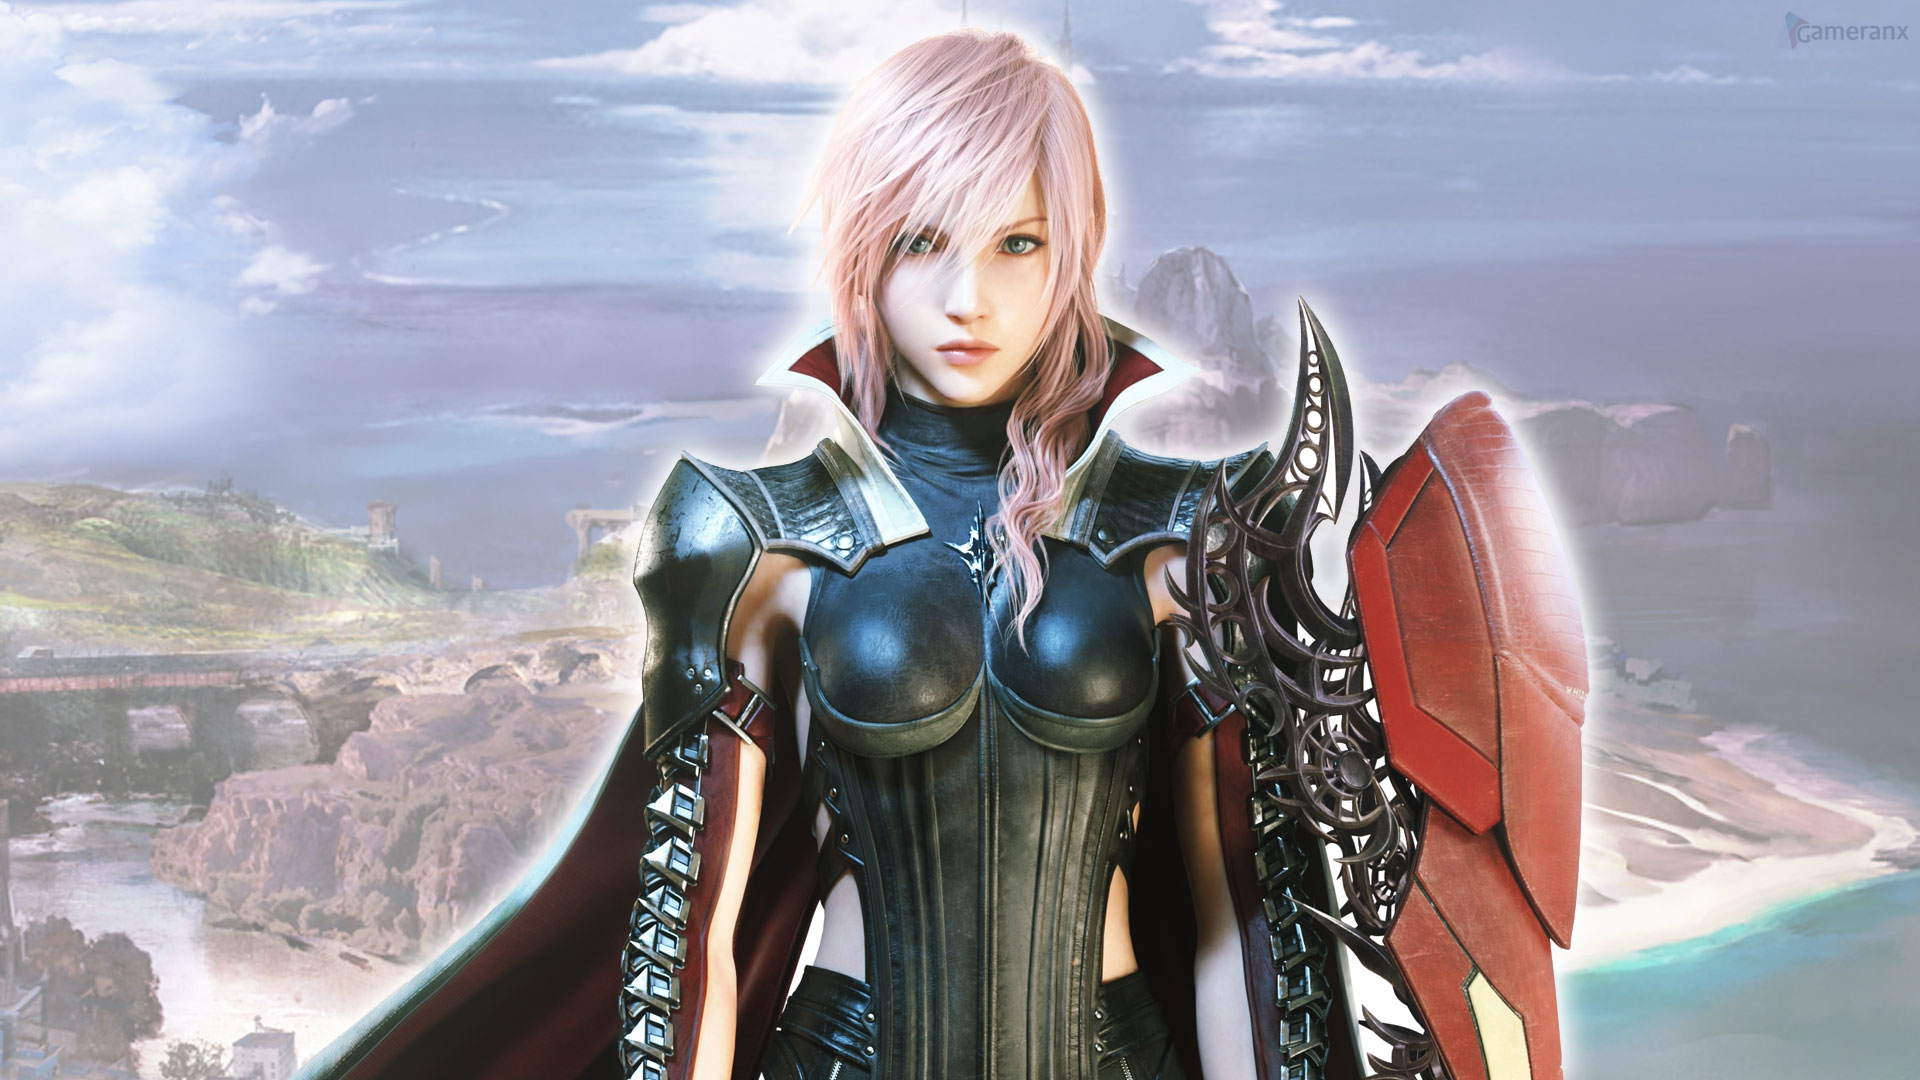 lightning-returns-final-fantasy-xiii-wallpaper-1  sc 1 st  This Is Xbox & Lightning Returns Final Fantasy XIII - DLC Out Today | This Is Xbox